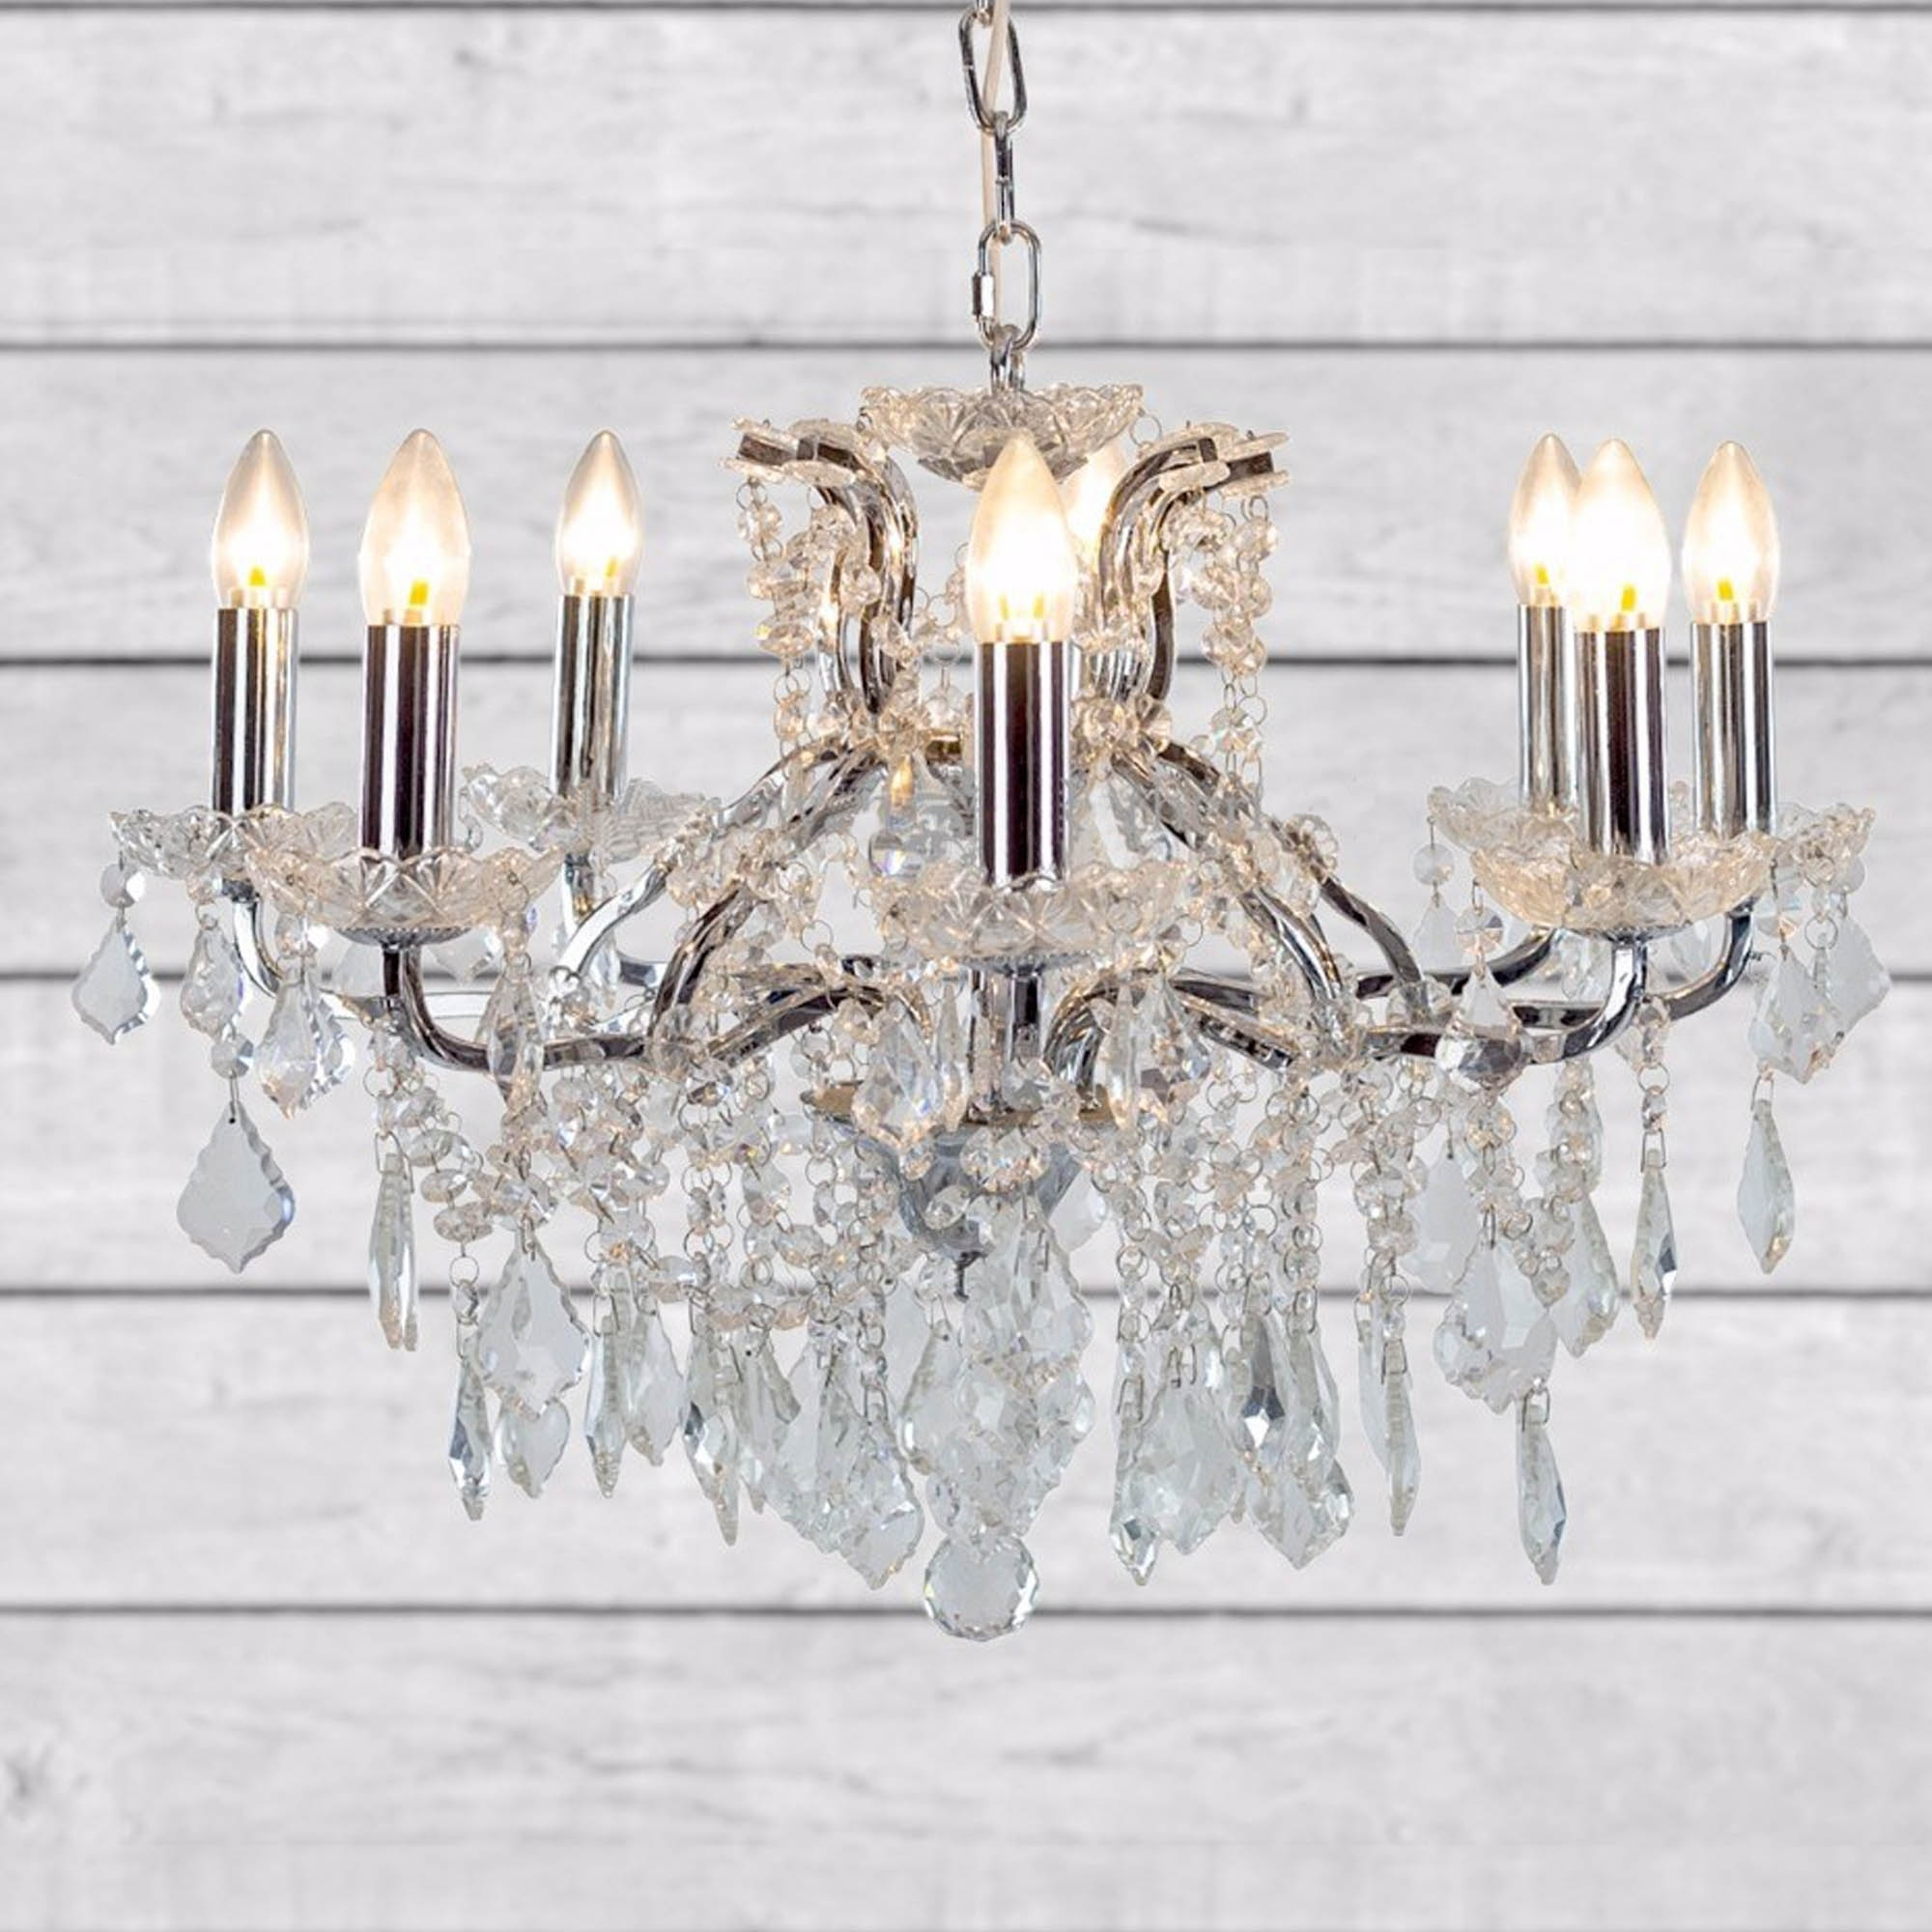 antique french style 8 branch chrome shallow chandelier homesdirect365. Black Bedroom Furniture Sets. Home Design Ideas